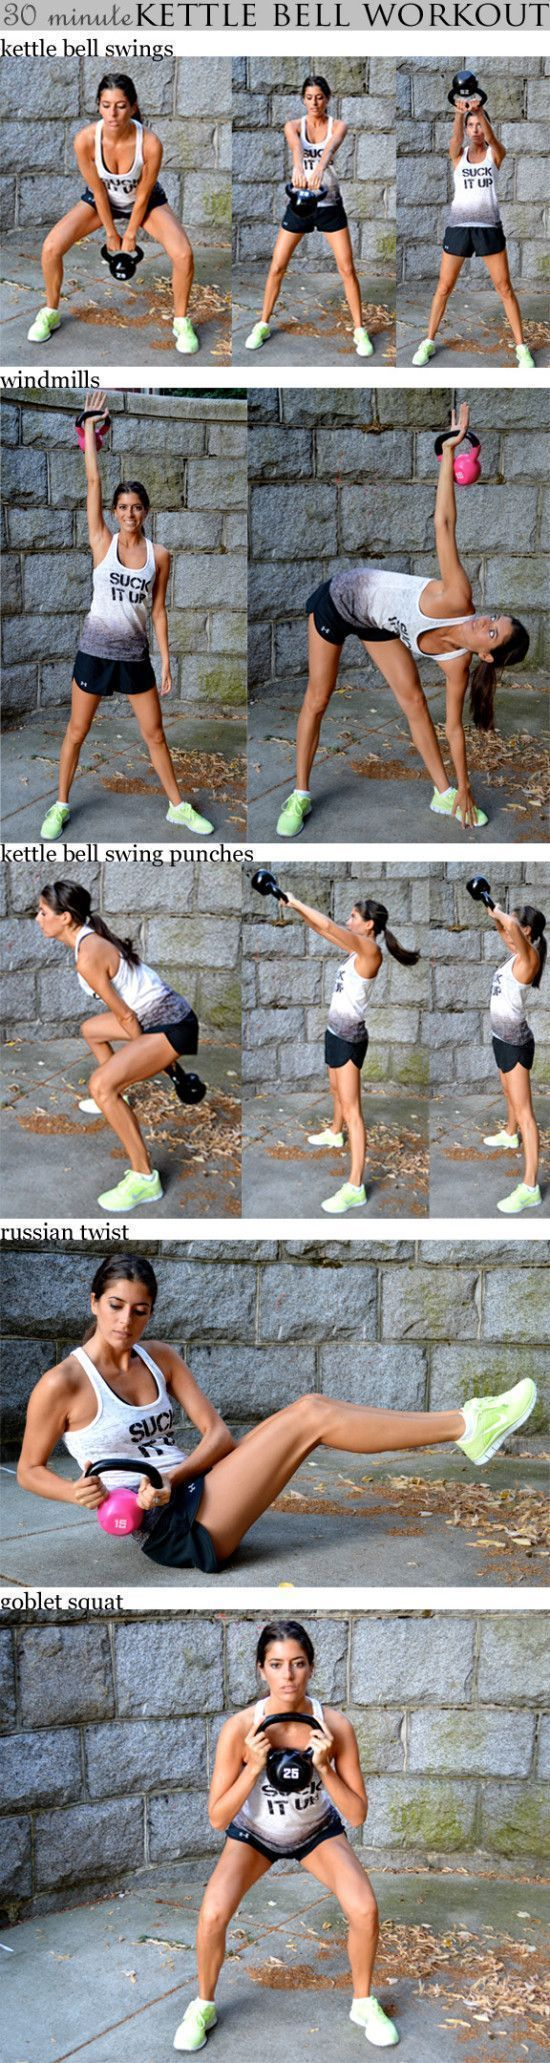 30 Min Kettlebell Workout | Posted By: CustomWeightLossProgram.com https://www.kettlebellmaniac.com/kettlebell-exercises/ https://www.kettlebellmaniac.com/shop/ https://www.kettlebellmaniac.com/shop/ #kettlebellworkouts #kettlebellexercise